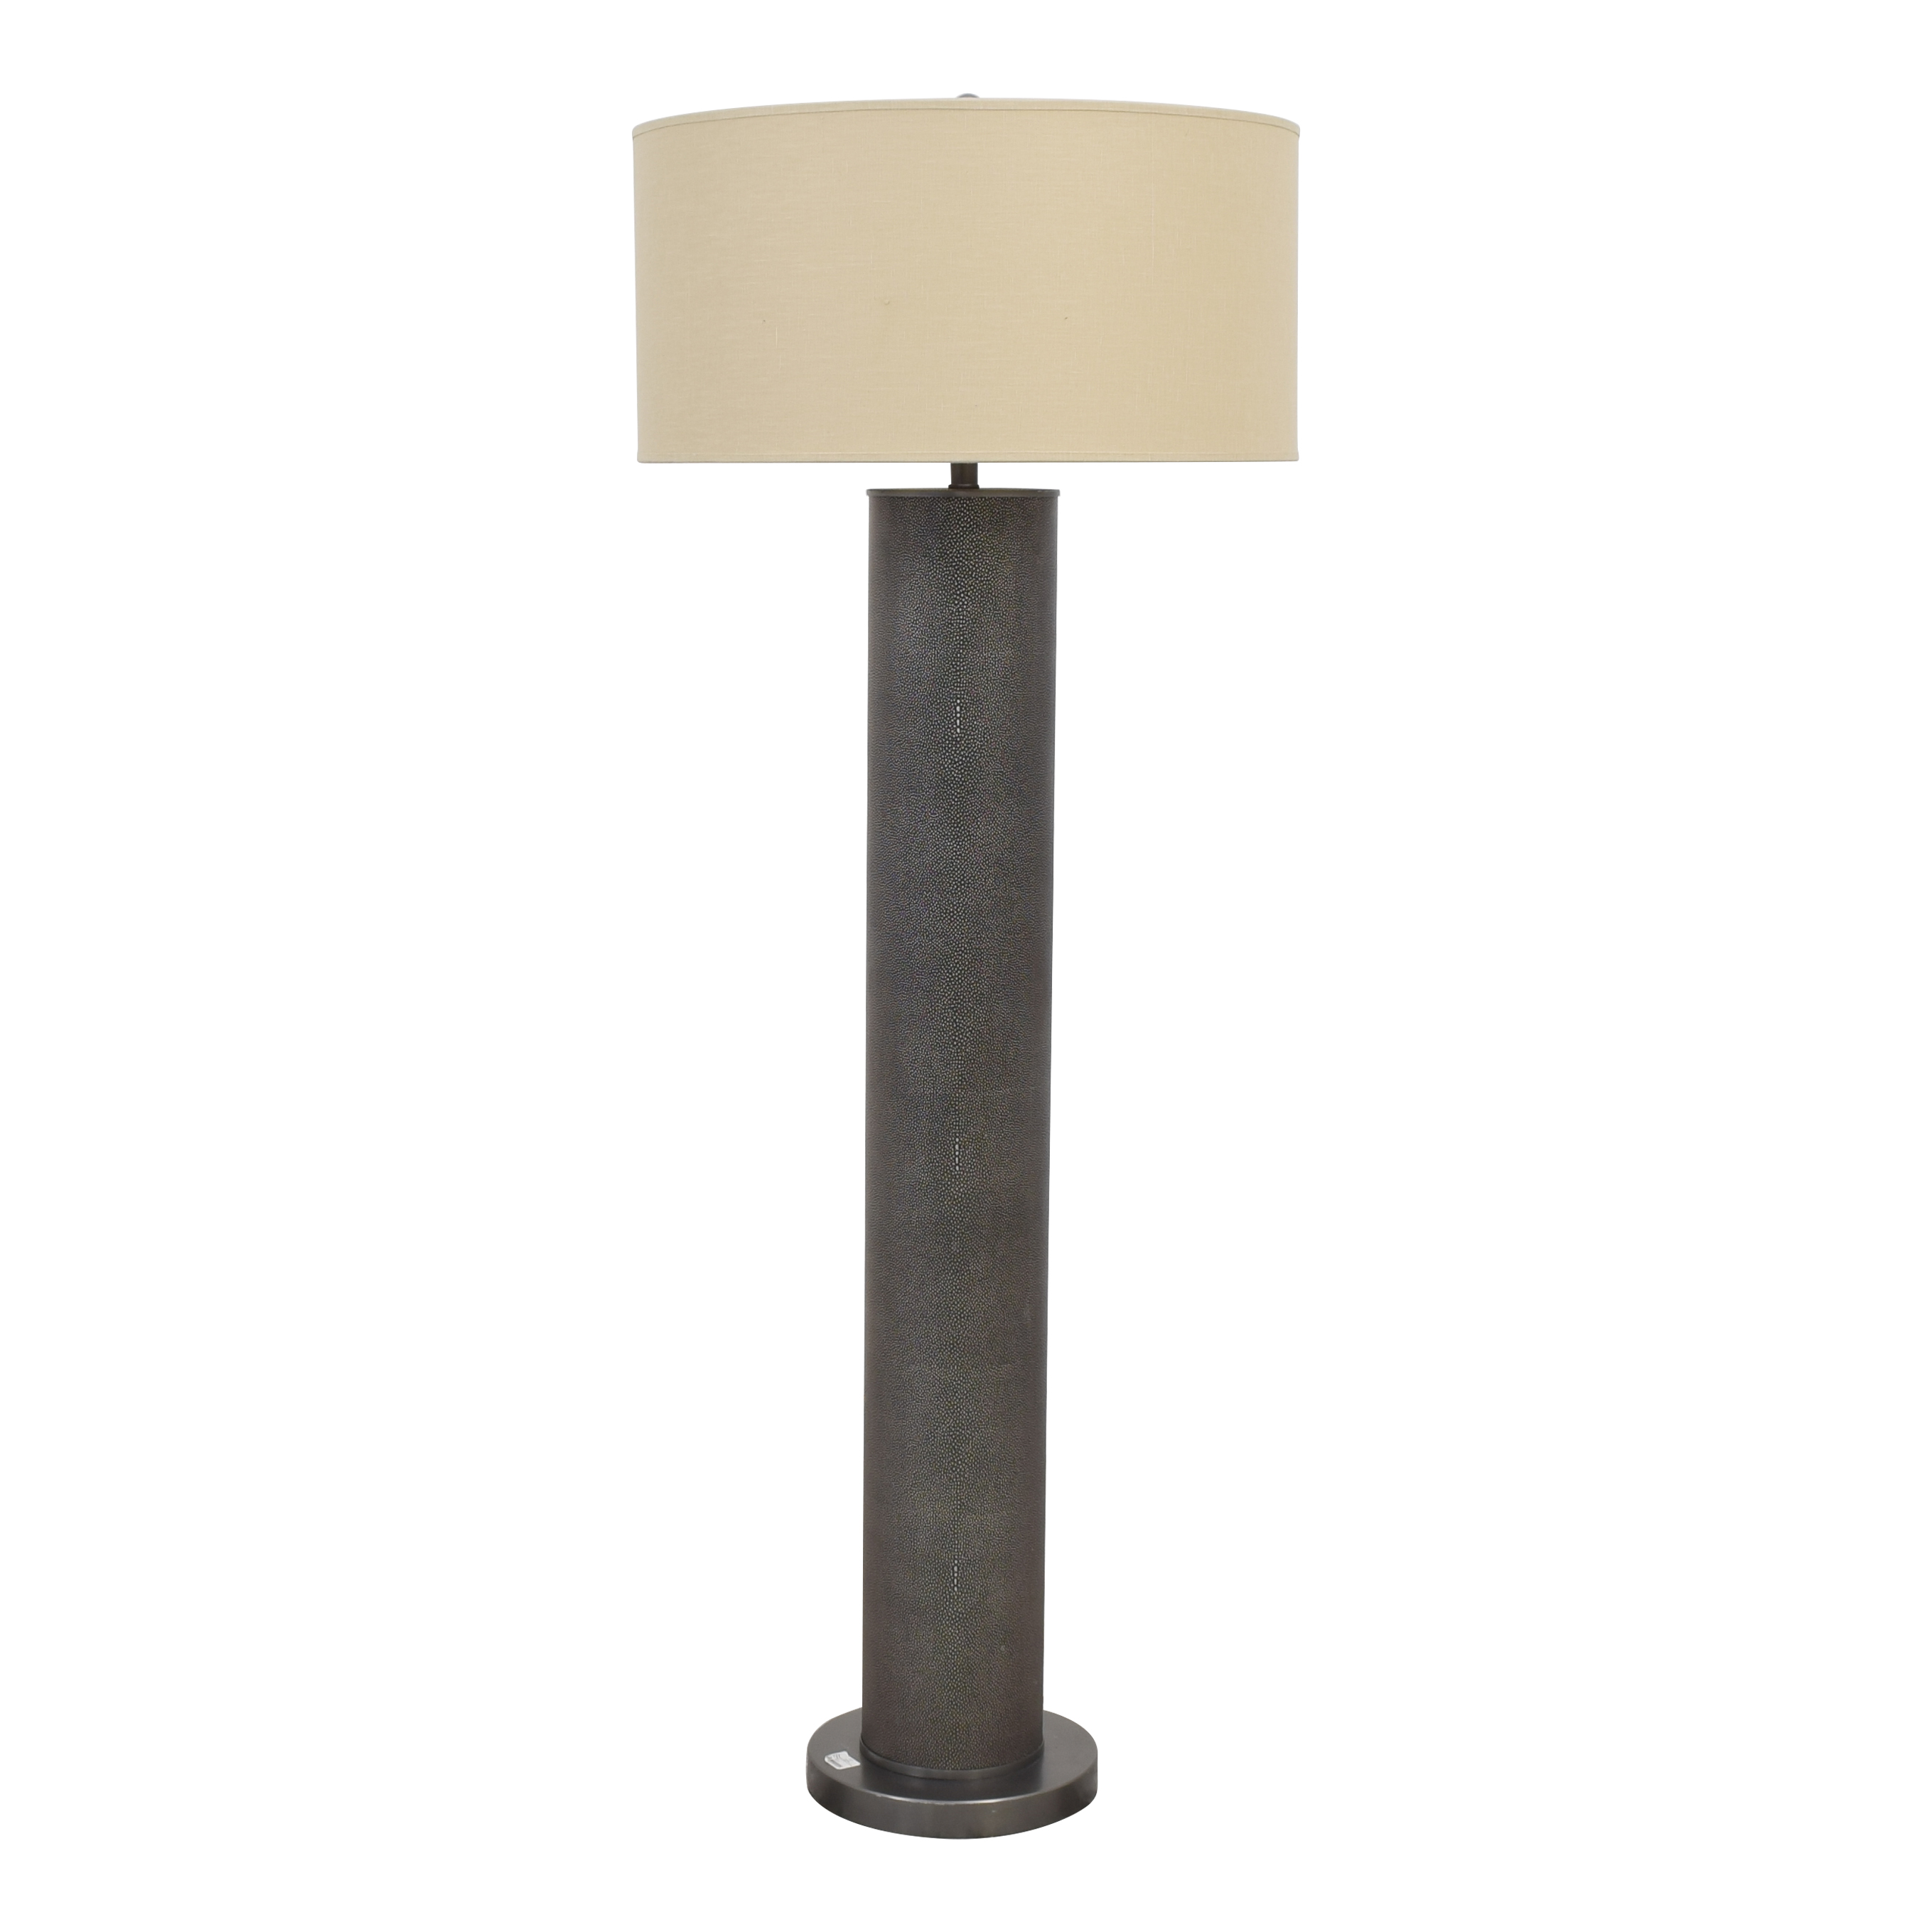 Restoration Hardware Restoration Hardware Delano Shaygreen Cylinder Lamp second hand